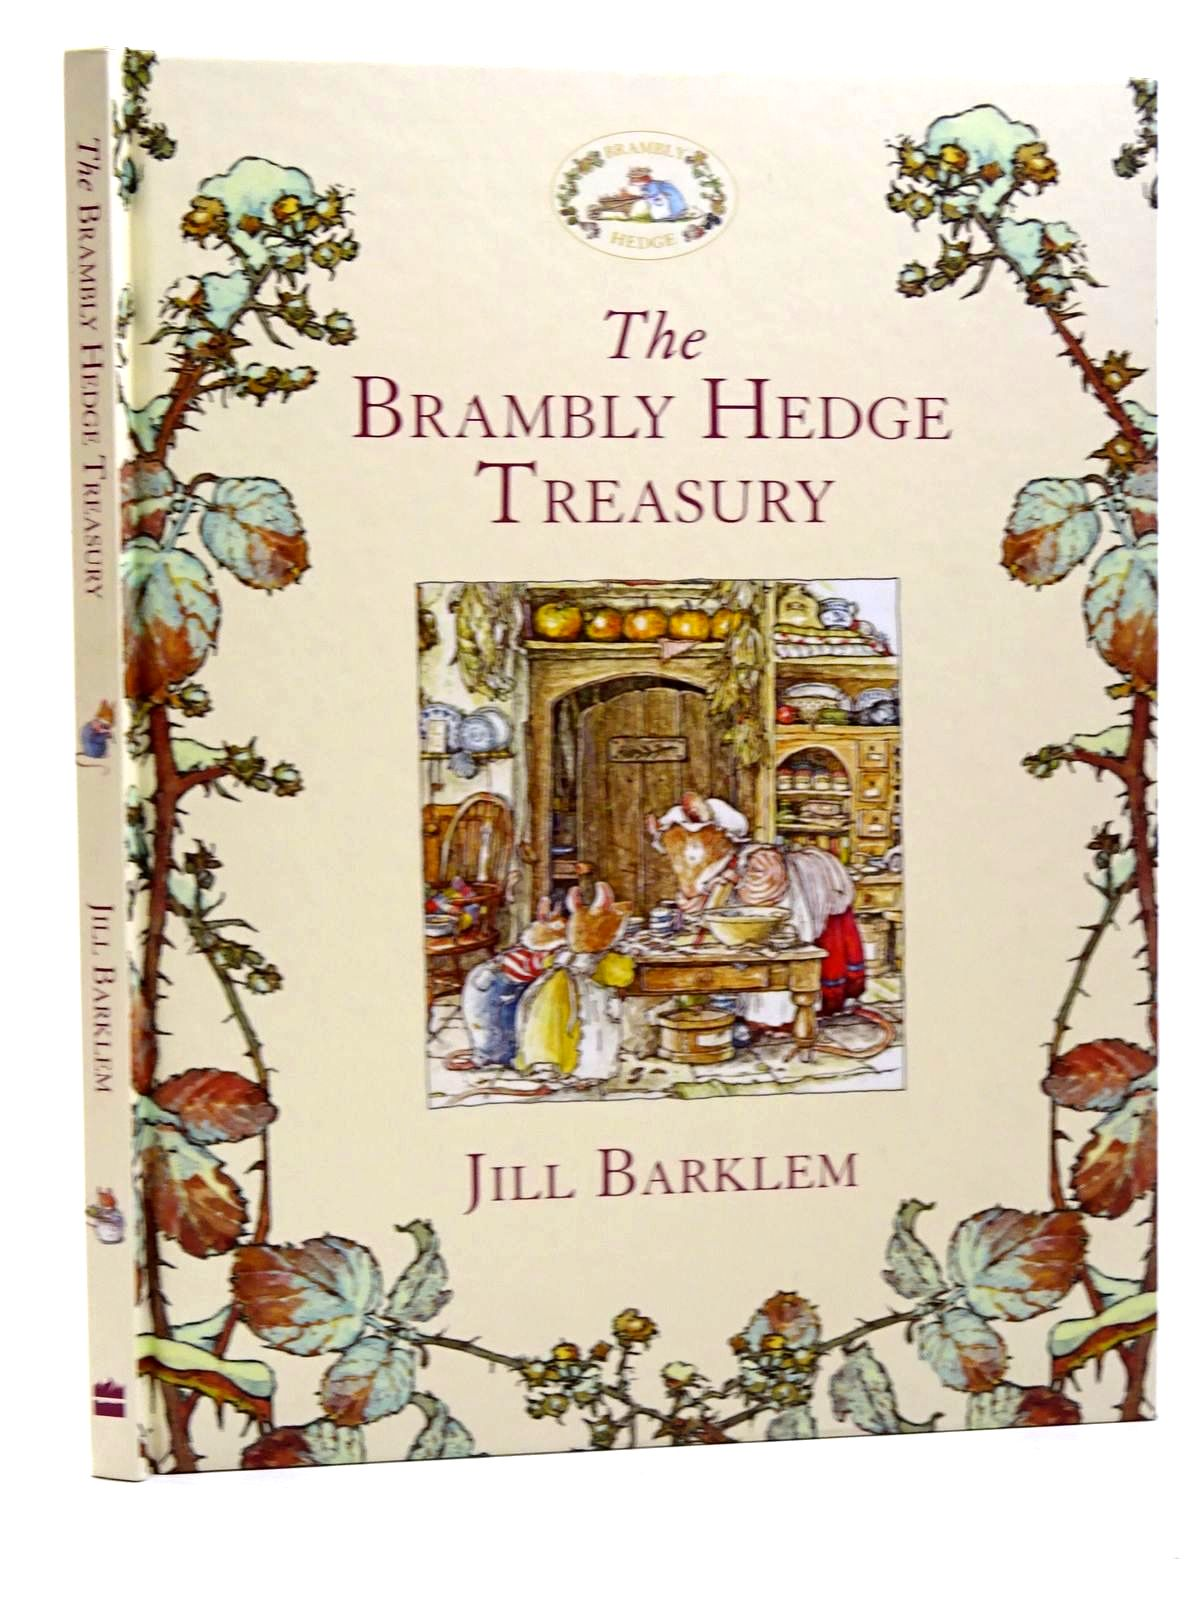 Photo of THE BRAMBLY HEDGE TREASURY written by Barklem, Jill illustrated by Barklem, Jill published by Harper Collins Childrens Books (STOCK CODE: 1317267)  for sale by Stella & Rose's Books